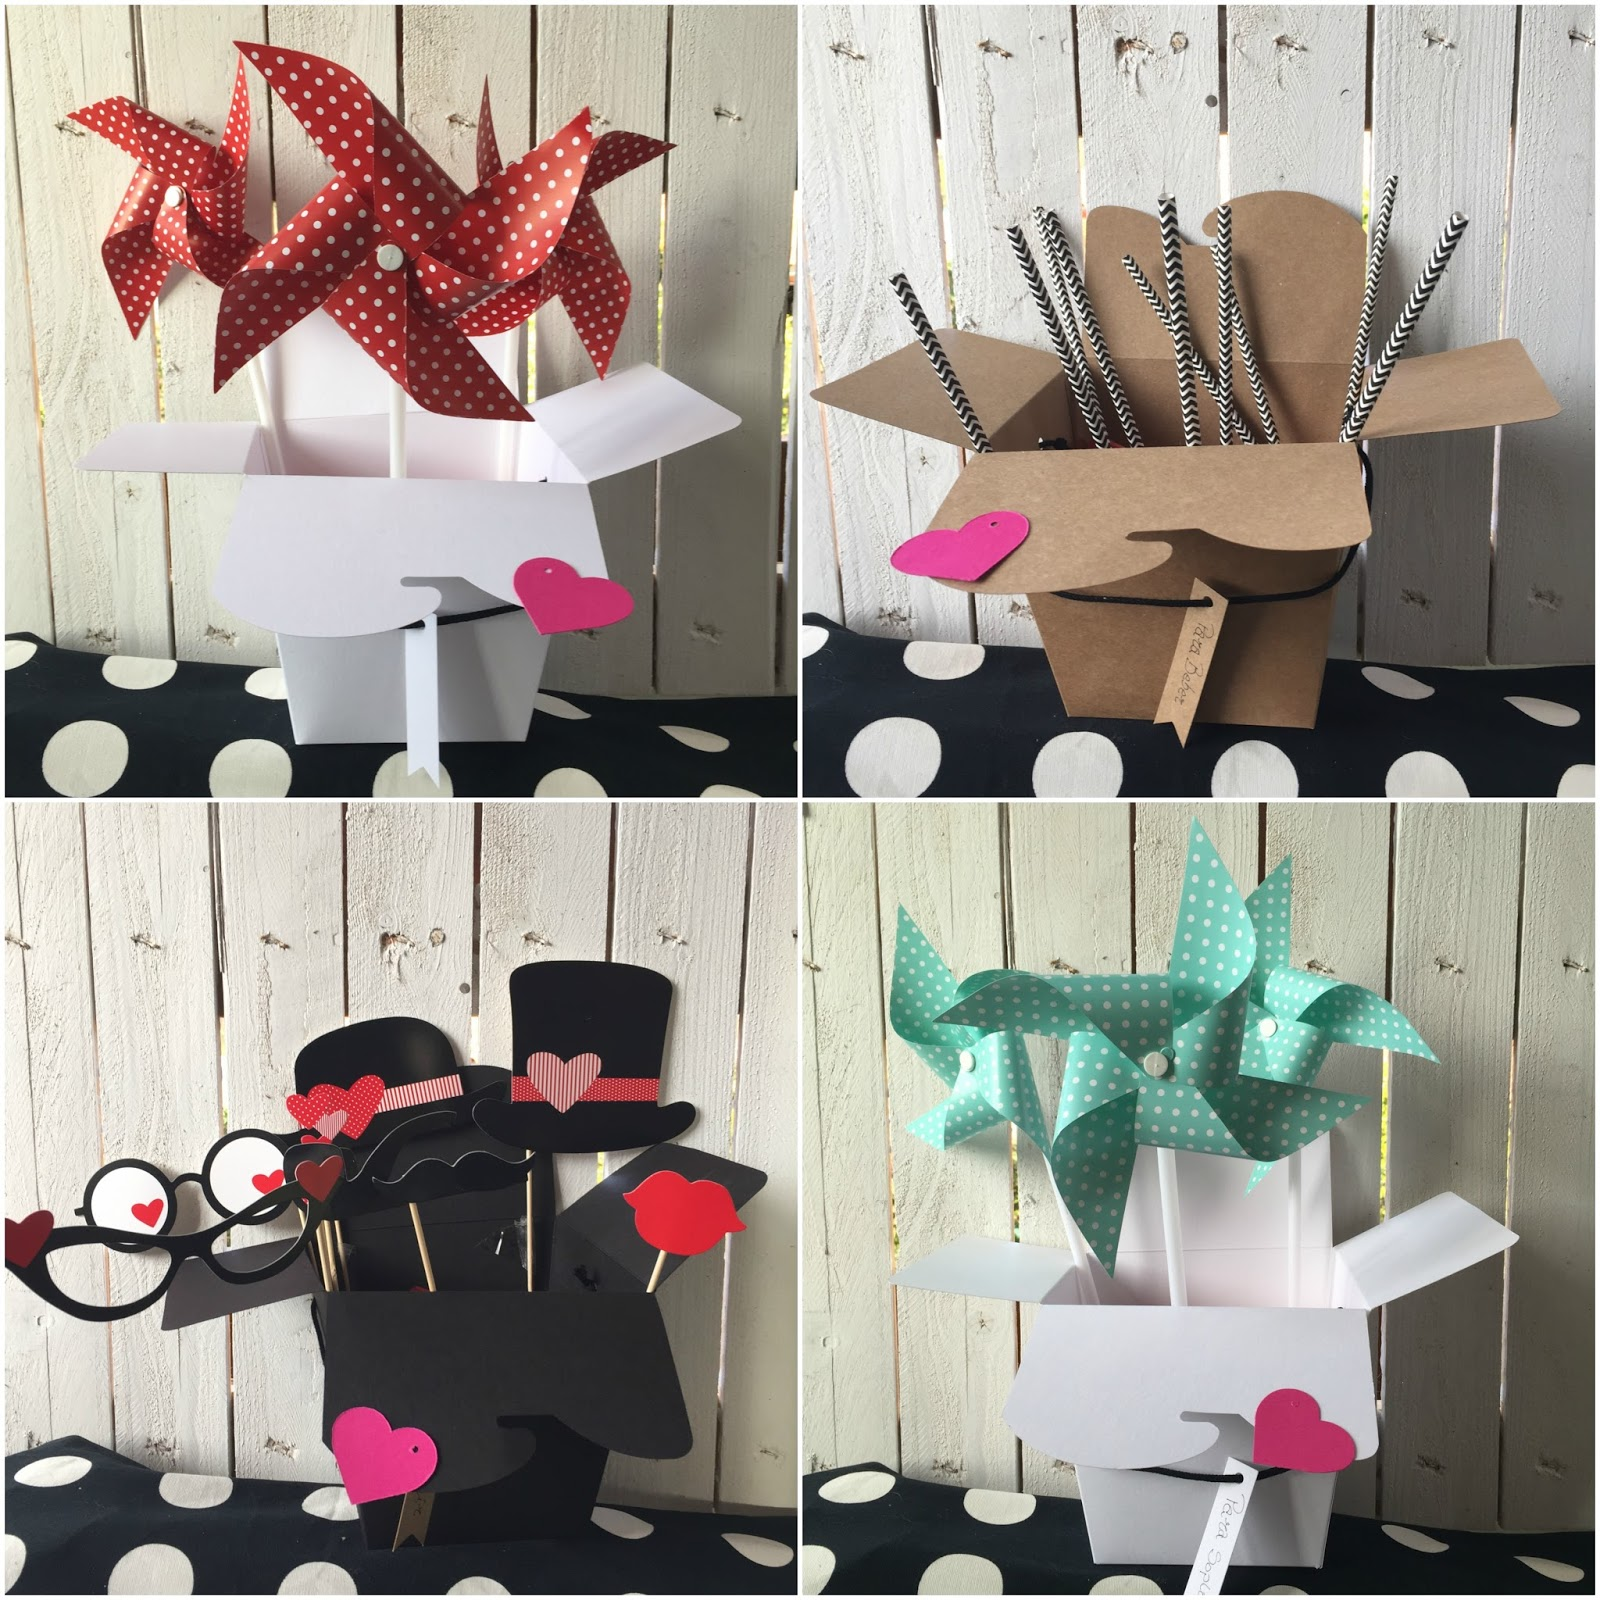 Ideas de boda con cajas de cart n un desafio de handbox y selfpackaging handbox craft lovers - Carton para juntas ...